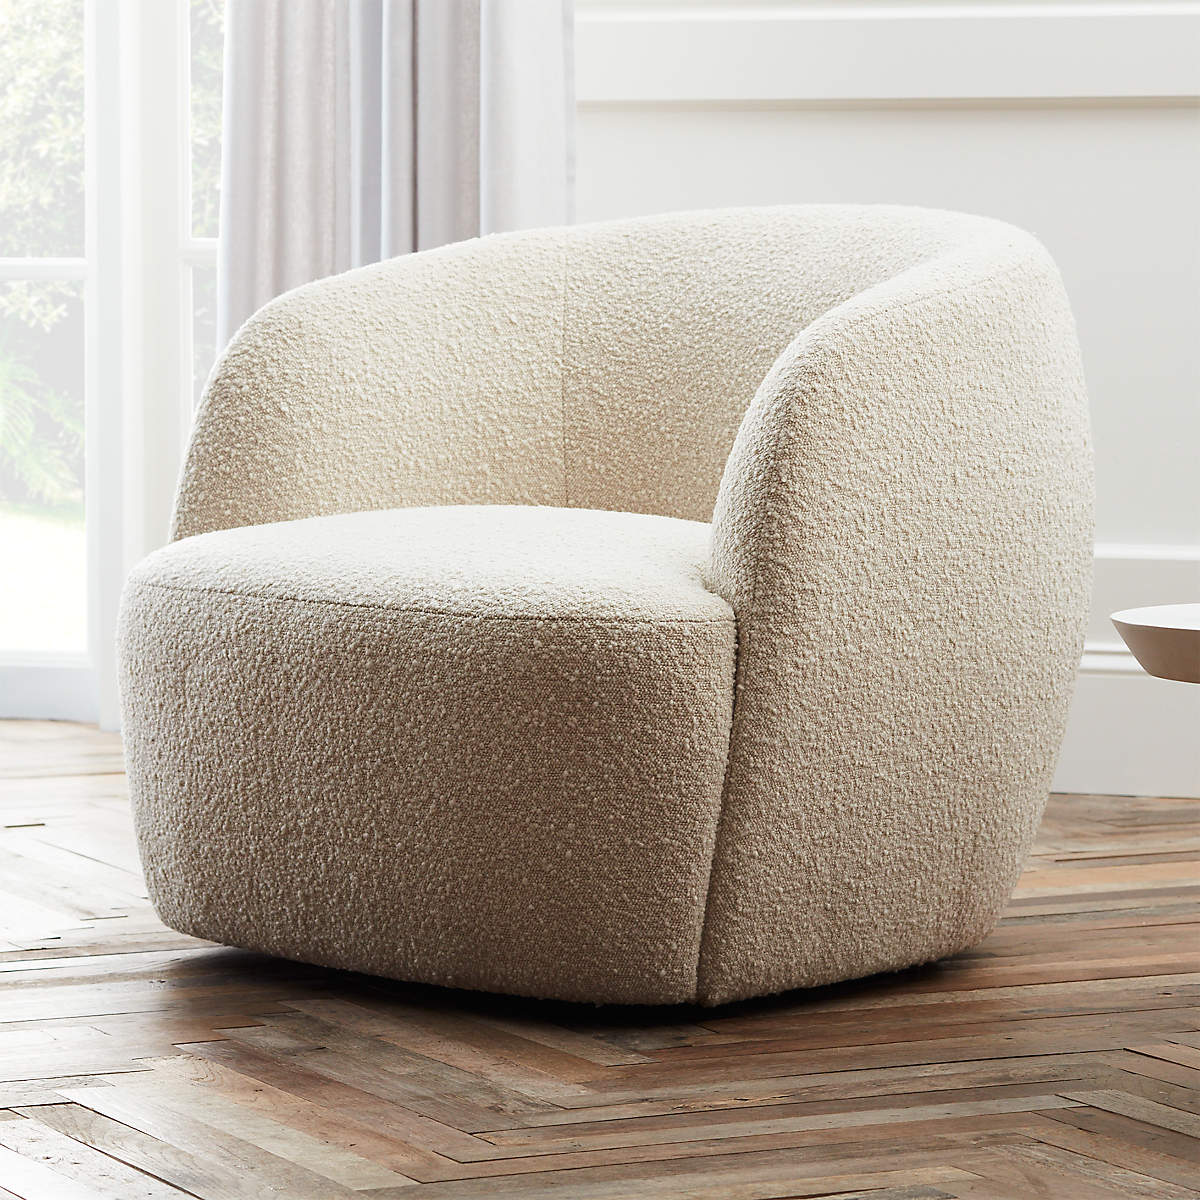 Gwyneth Ivory Boucle Chair- image 1 of 9 (Open Larger View)